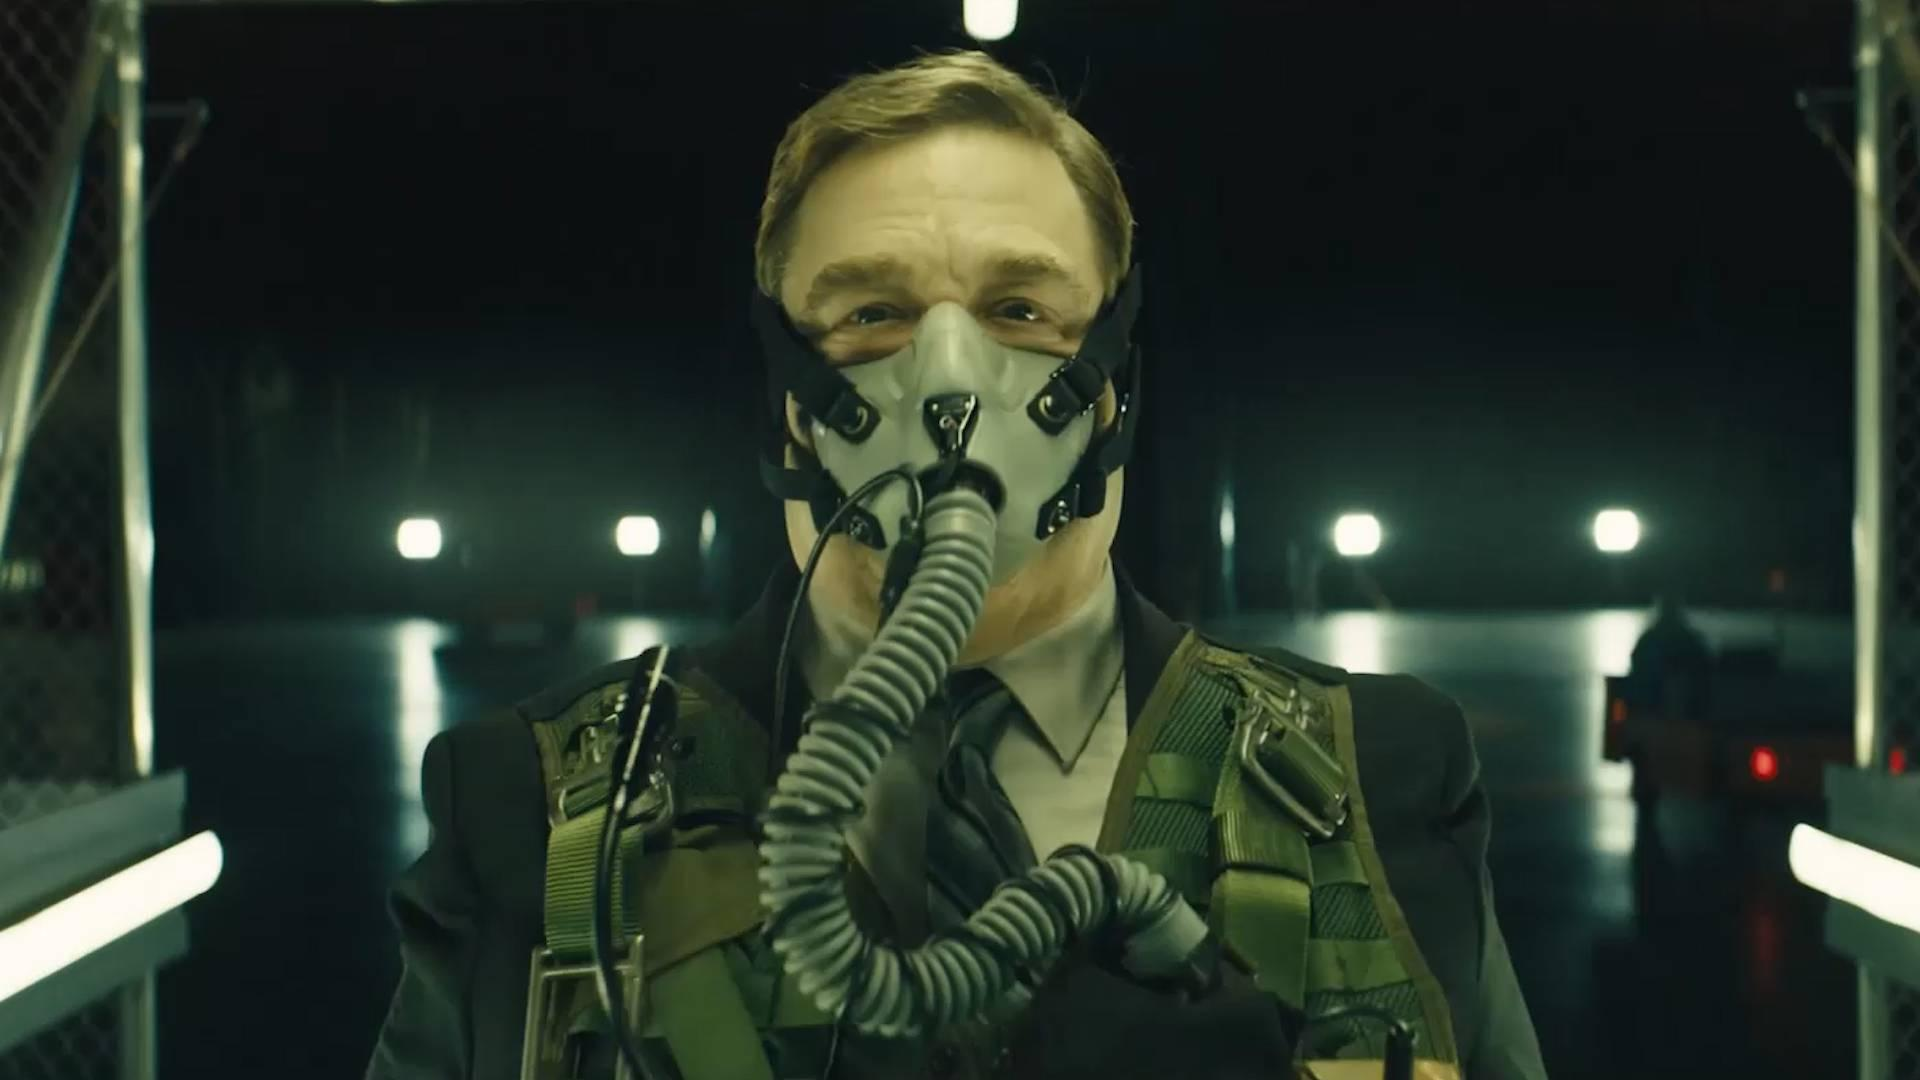 Set in a Chicago neighborhood nearly a decade after an occupation by an extraterrestrial force Captive State explores the lives on both sides of the conflict